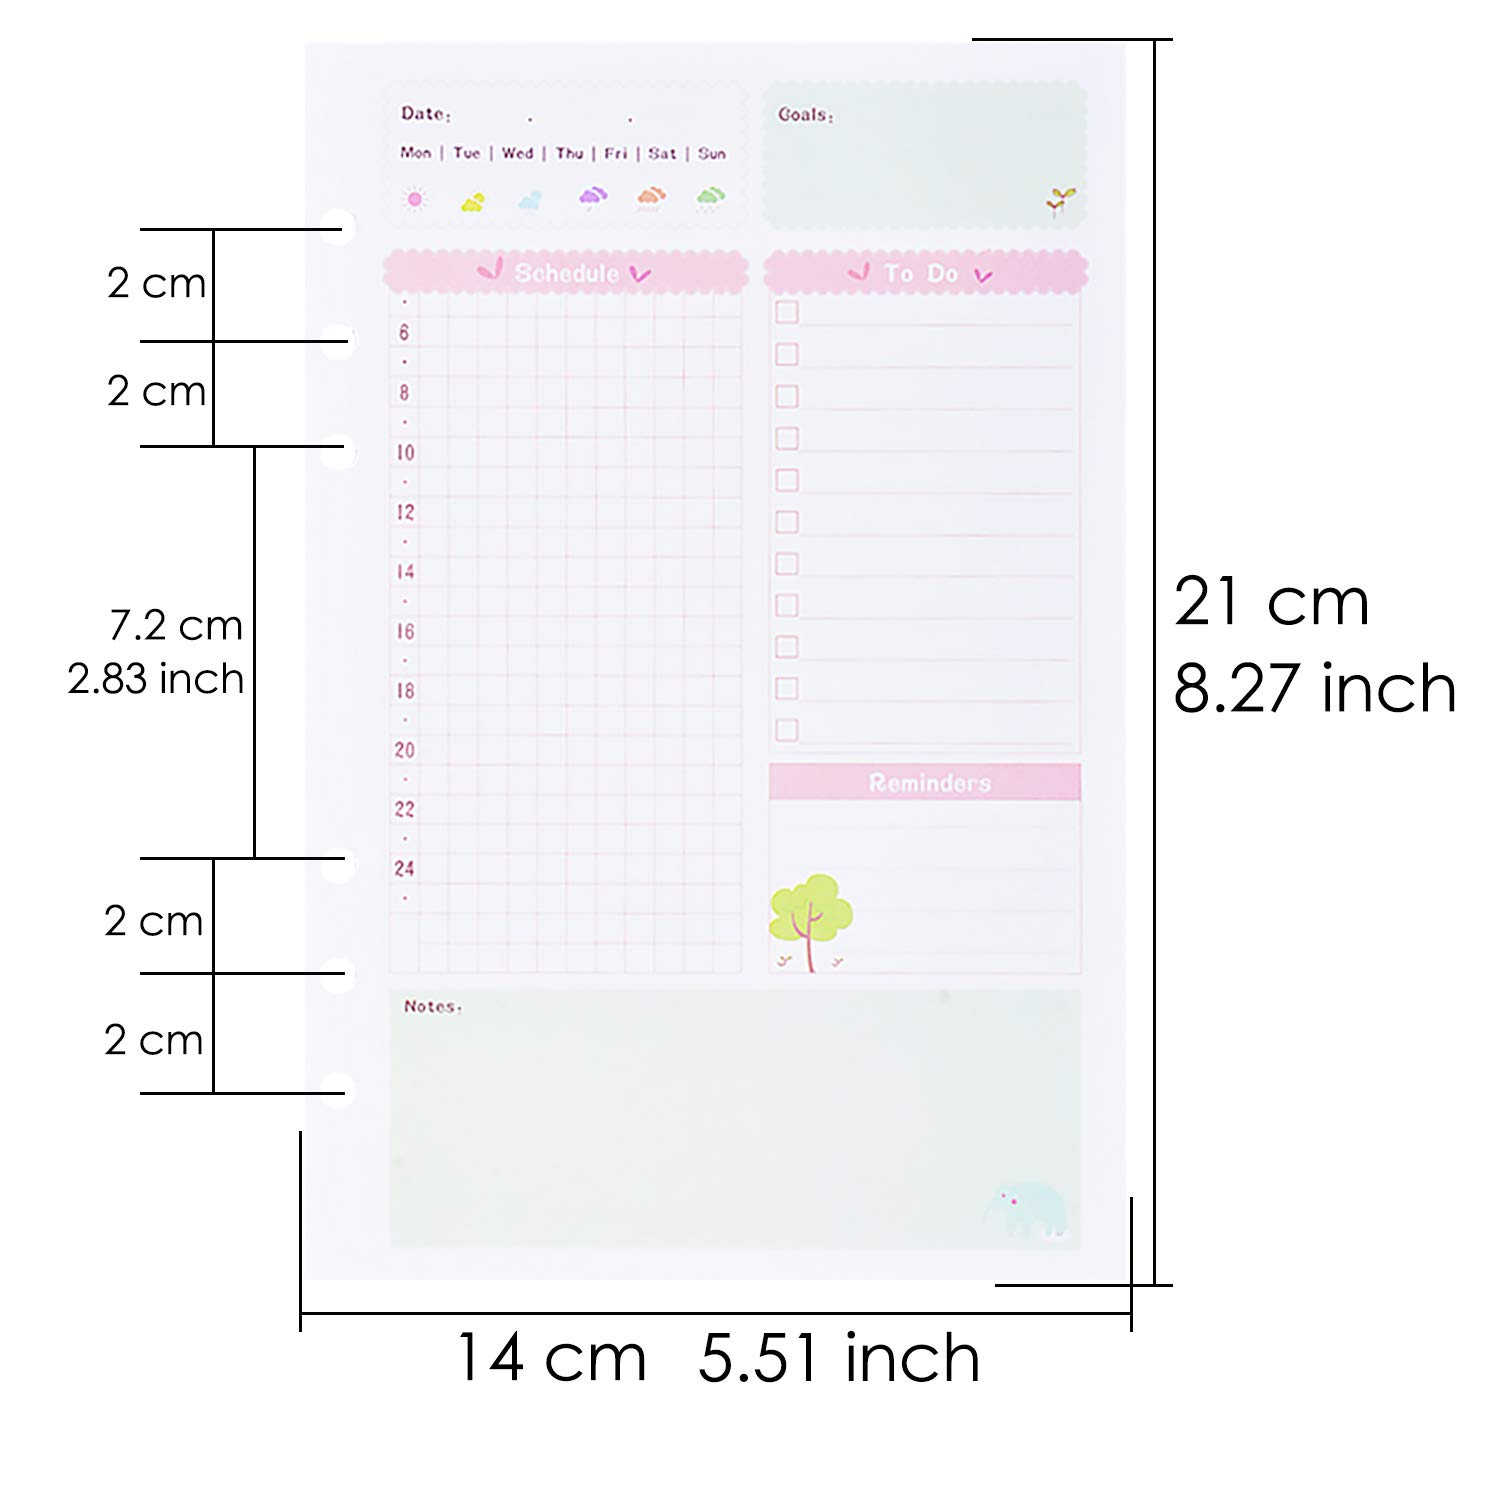 Cartone animato 90 pcs 6-Ring Journal Refills Lined Traveler Notebook Inserti in carta Allentata,21x14cm Larcenciel A5 Binder Refill Paper per Filofax